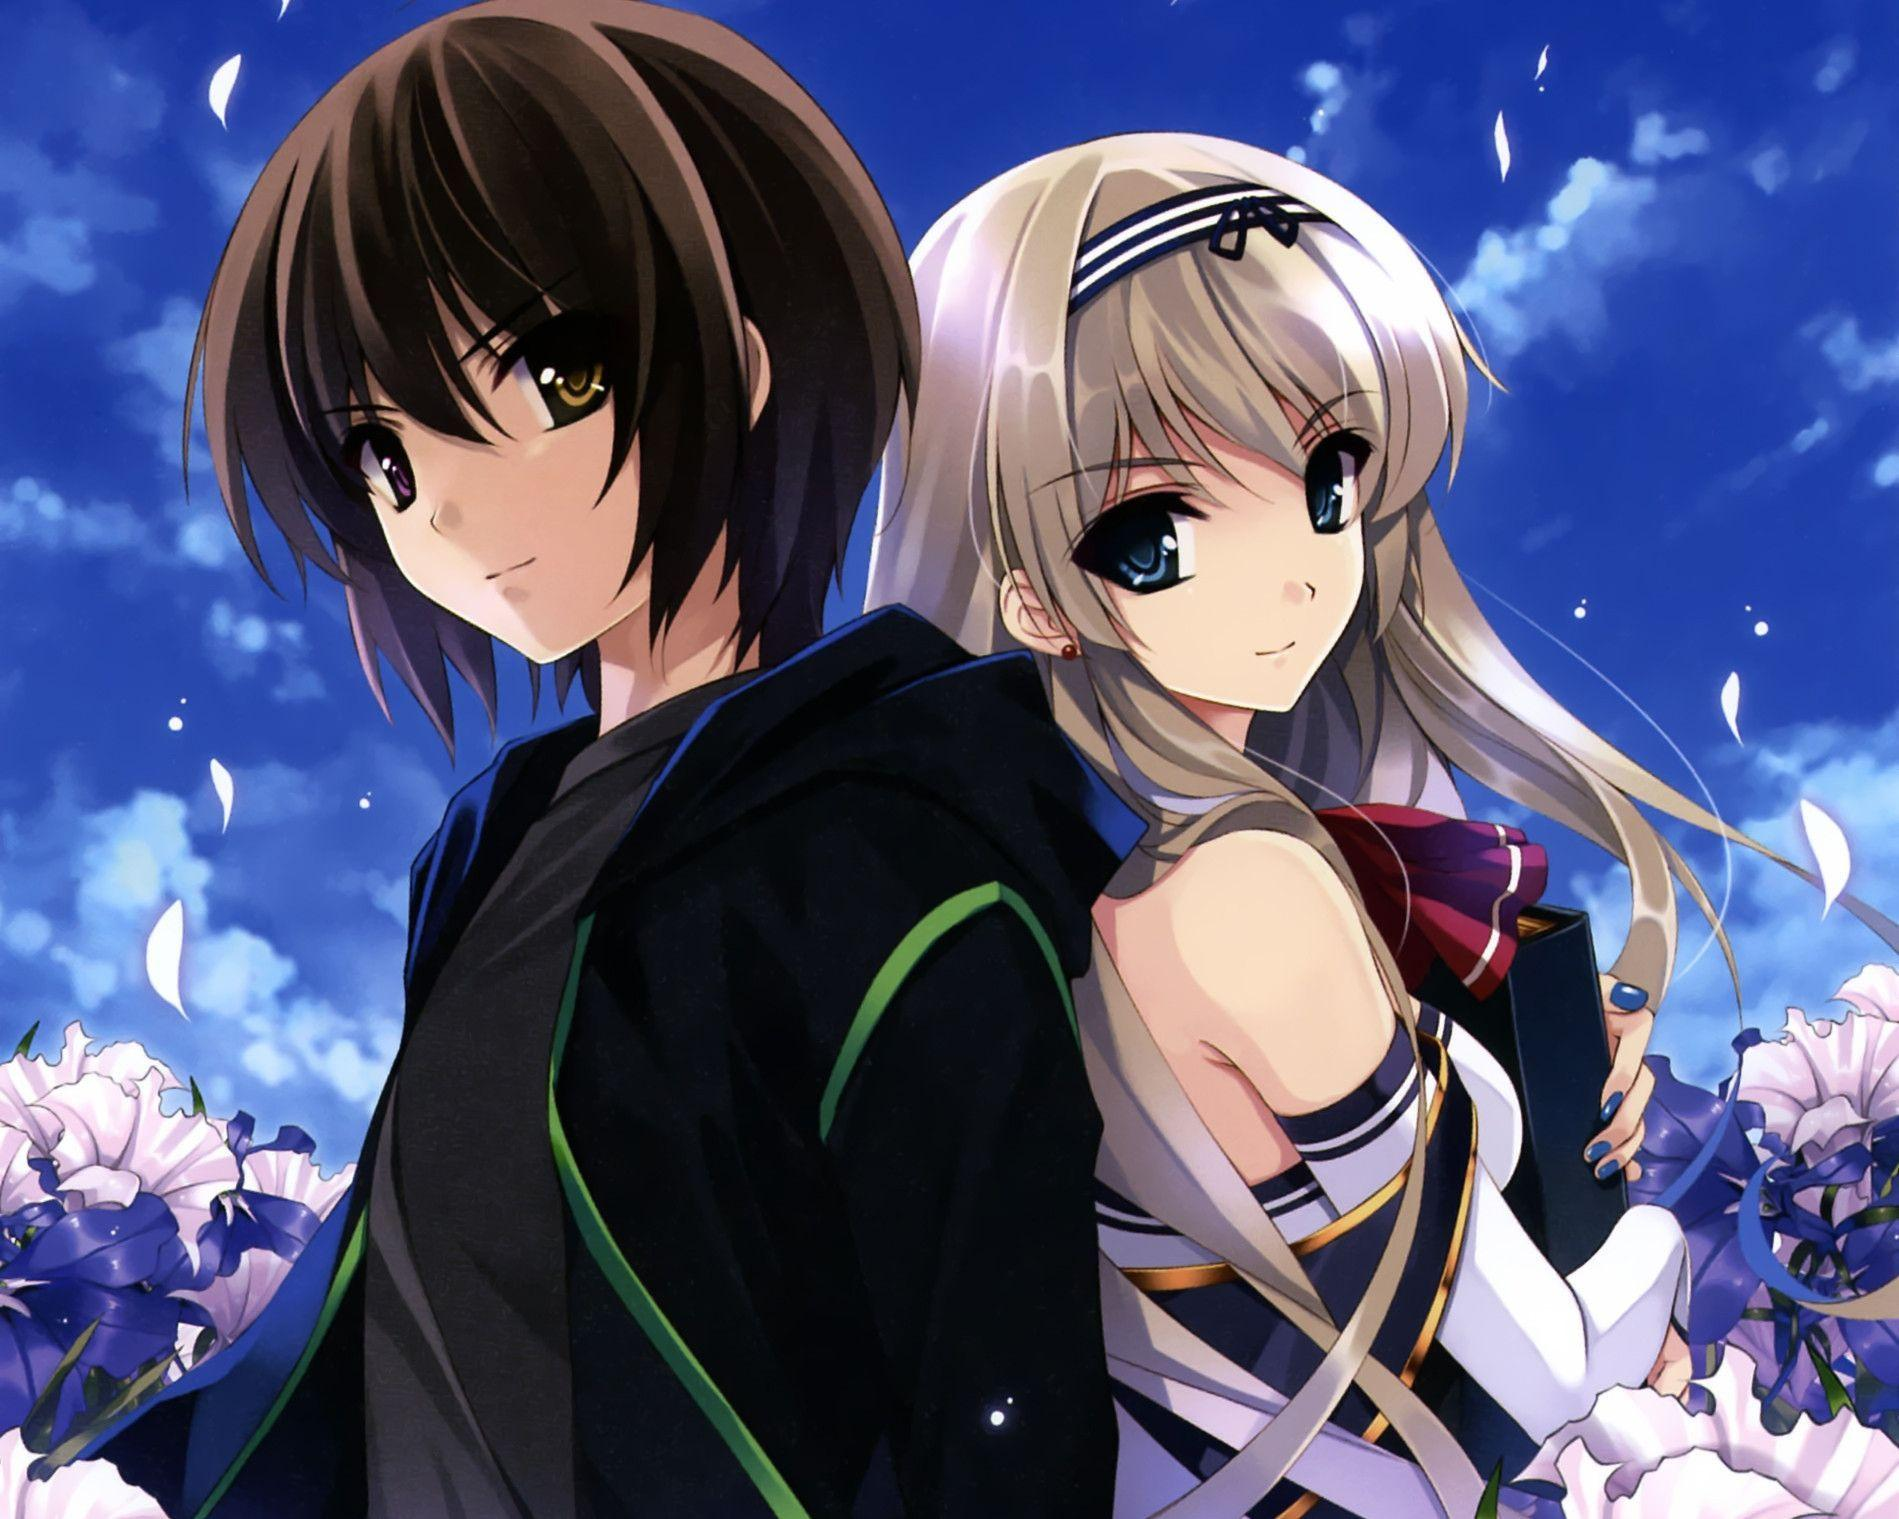 Wallpapers For Cute Anime Couples Wallpaper Desktop